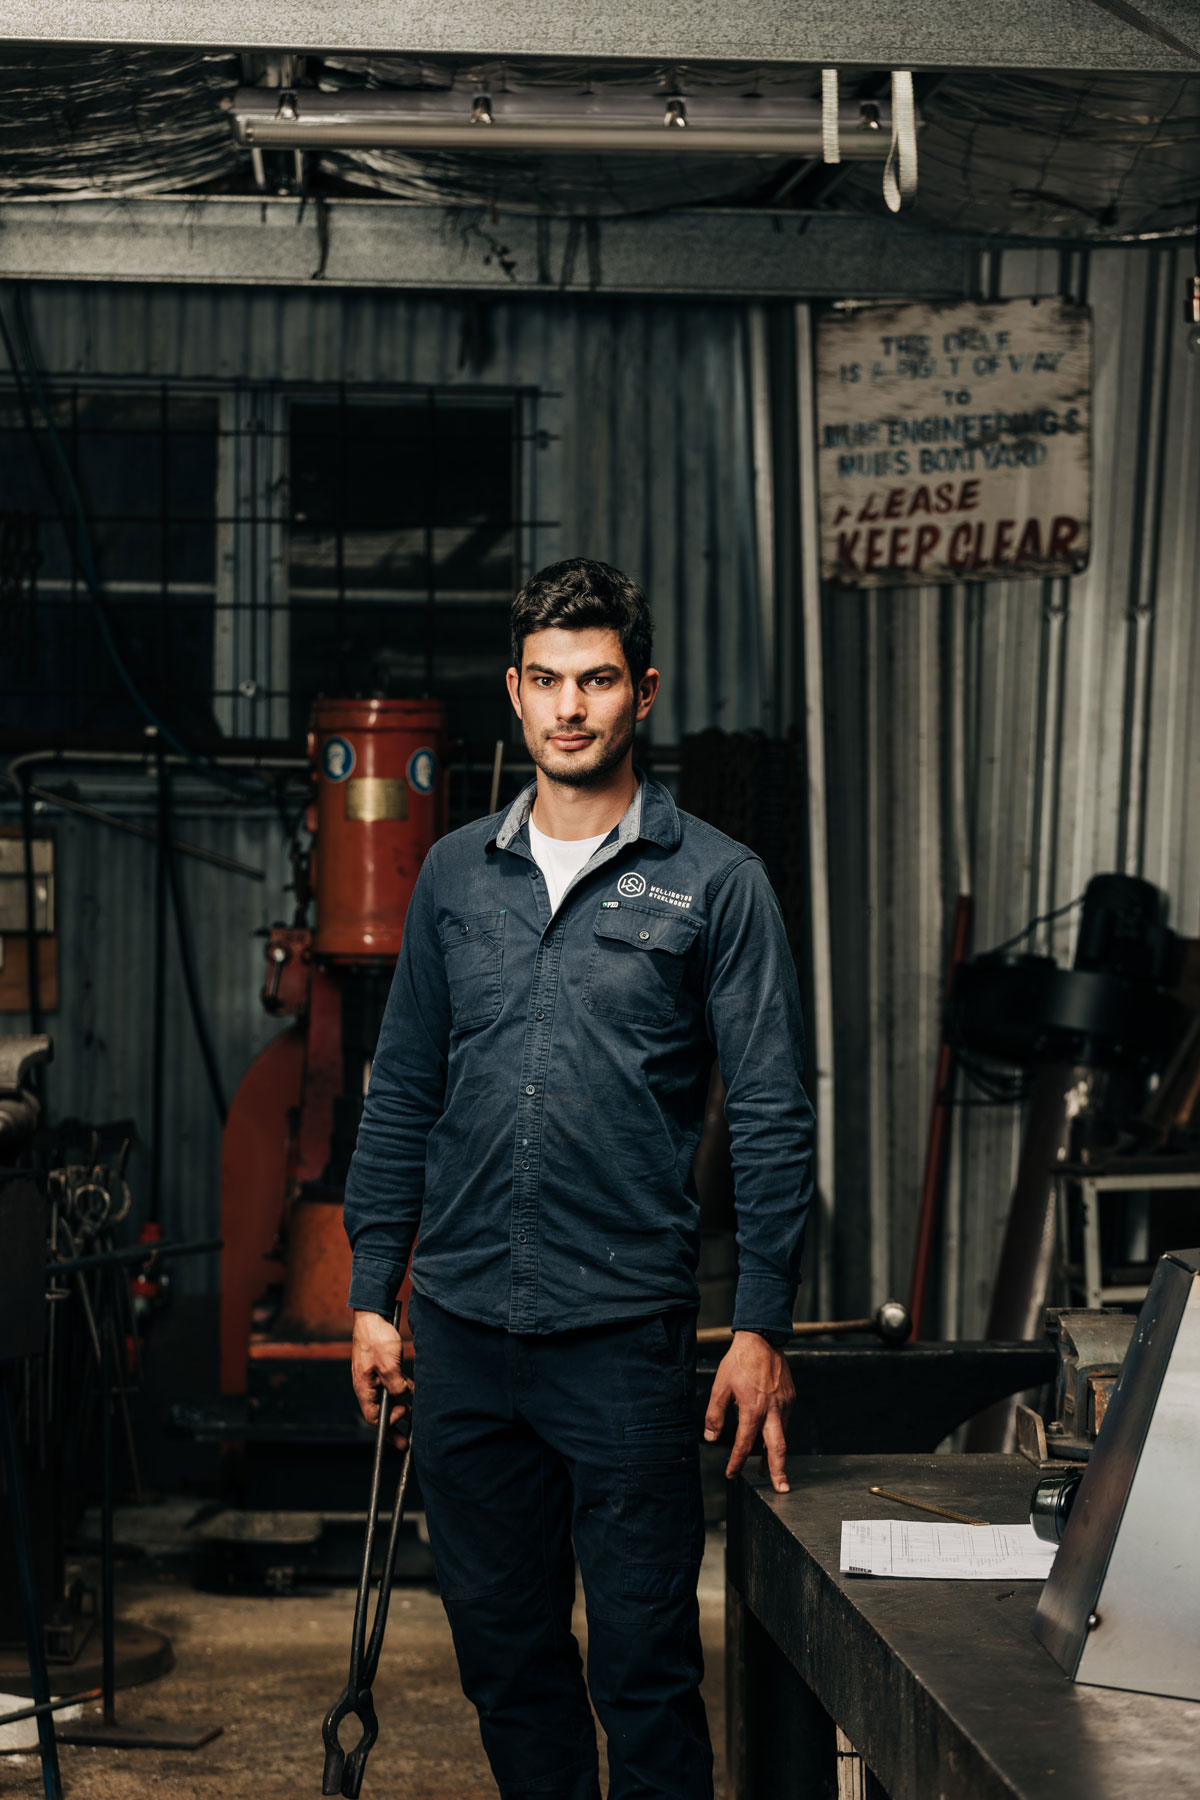 taig simms standing up in wellington steelworks overalls